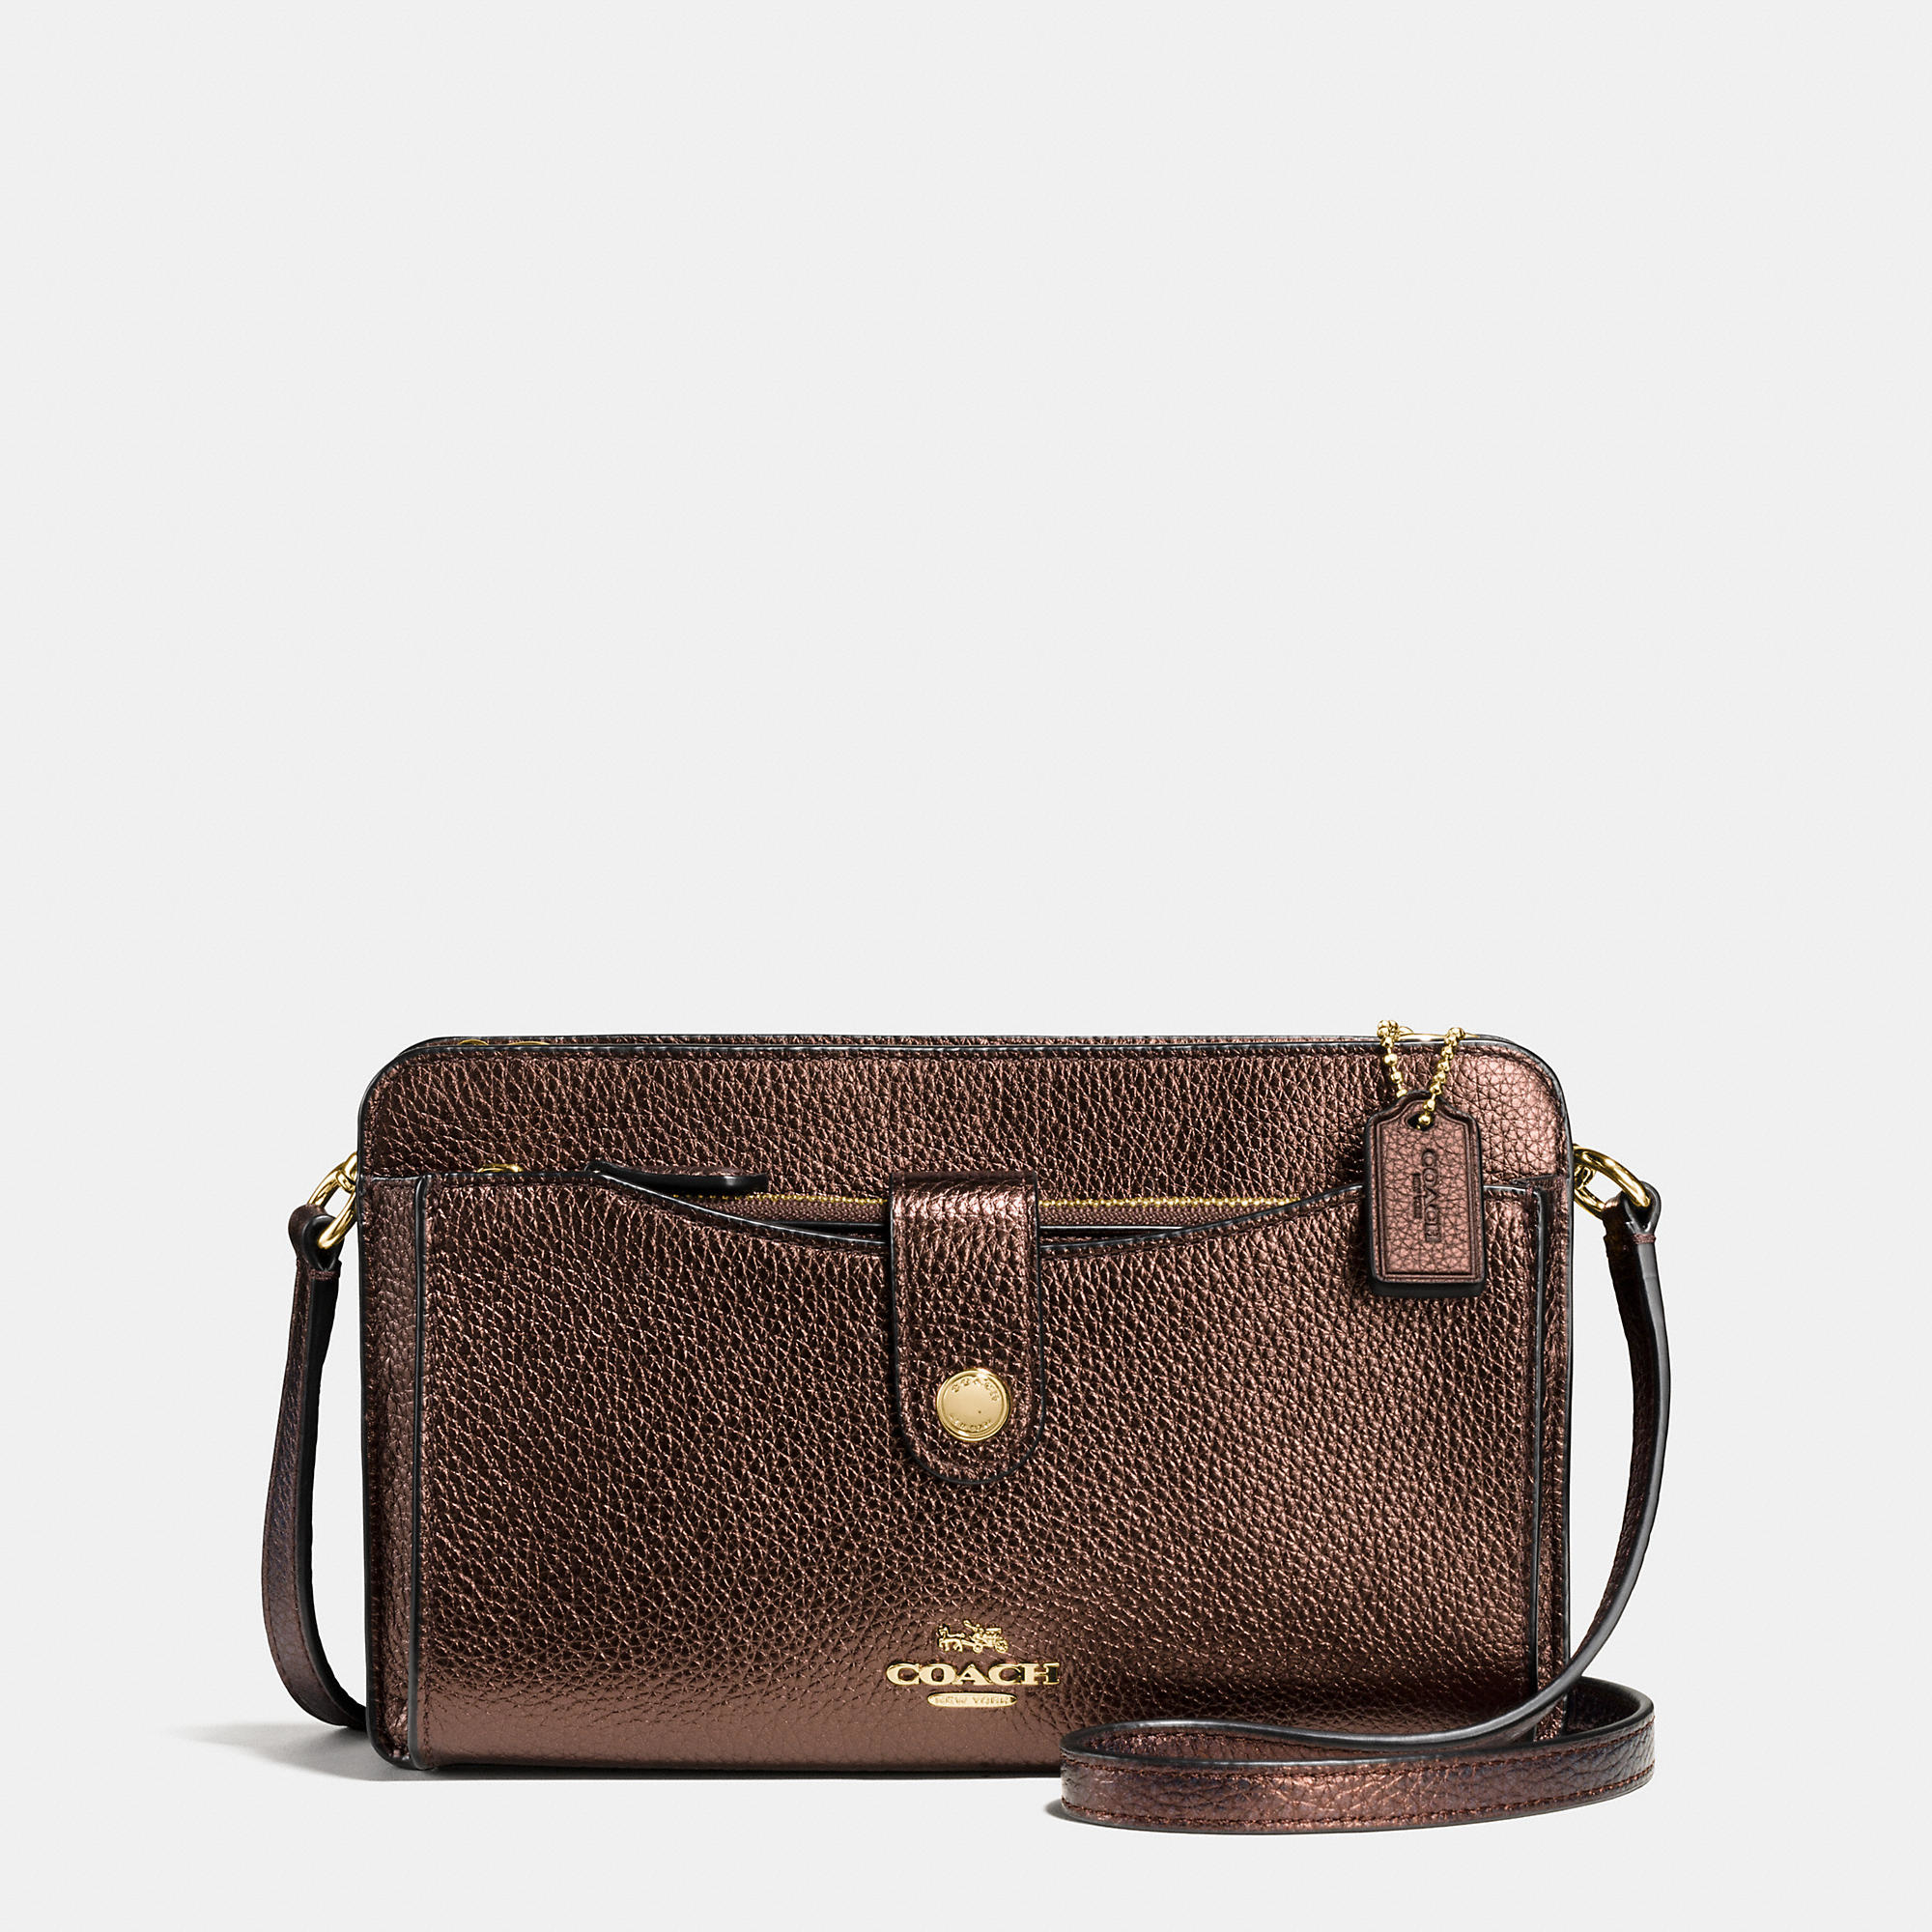 When looking for a good Weekender Bag, be sure to check out a Nylon Weekender Bag as well as a Leather Weekender Bag, when buying at Macy's.